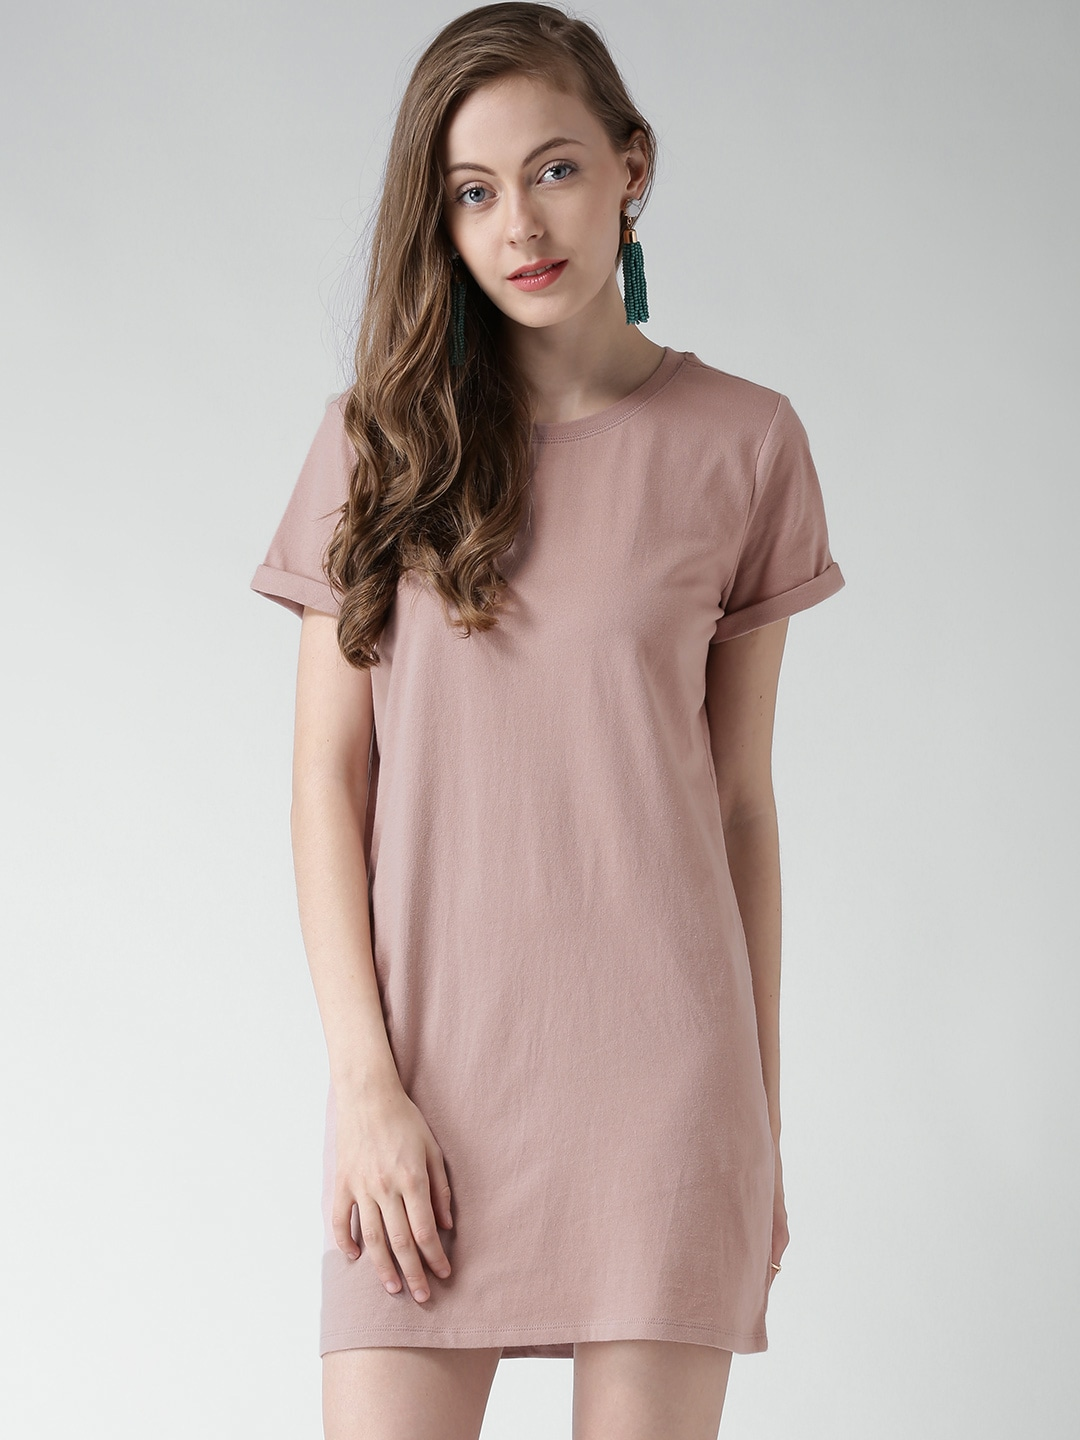 6fc659586c2 Forever 21 153567 Dusty Pink Shift Dress - Best Price in India